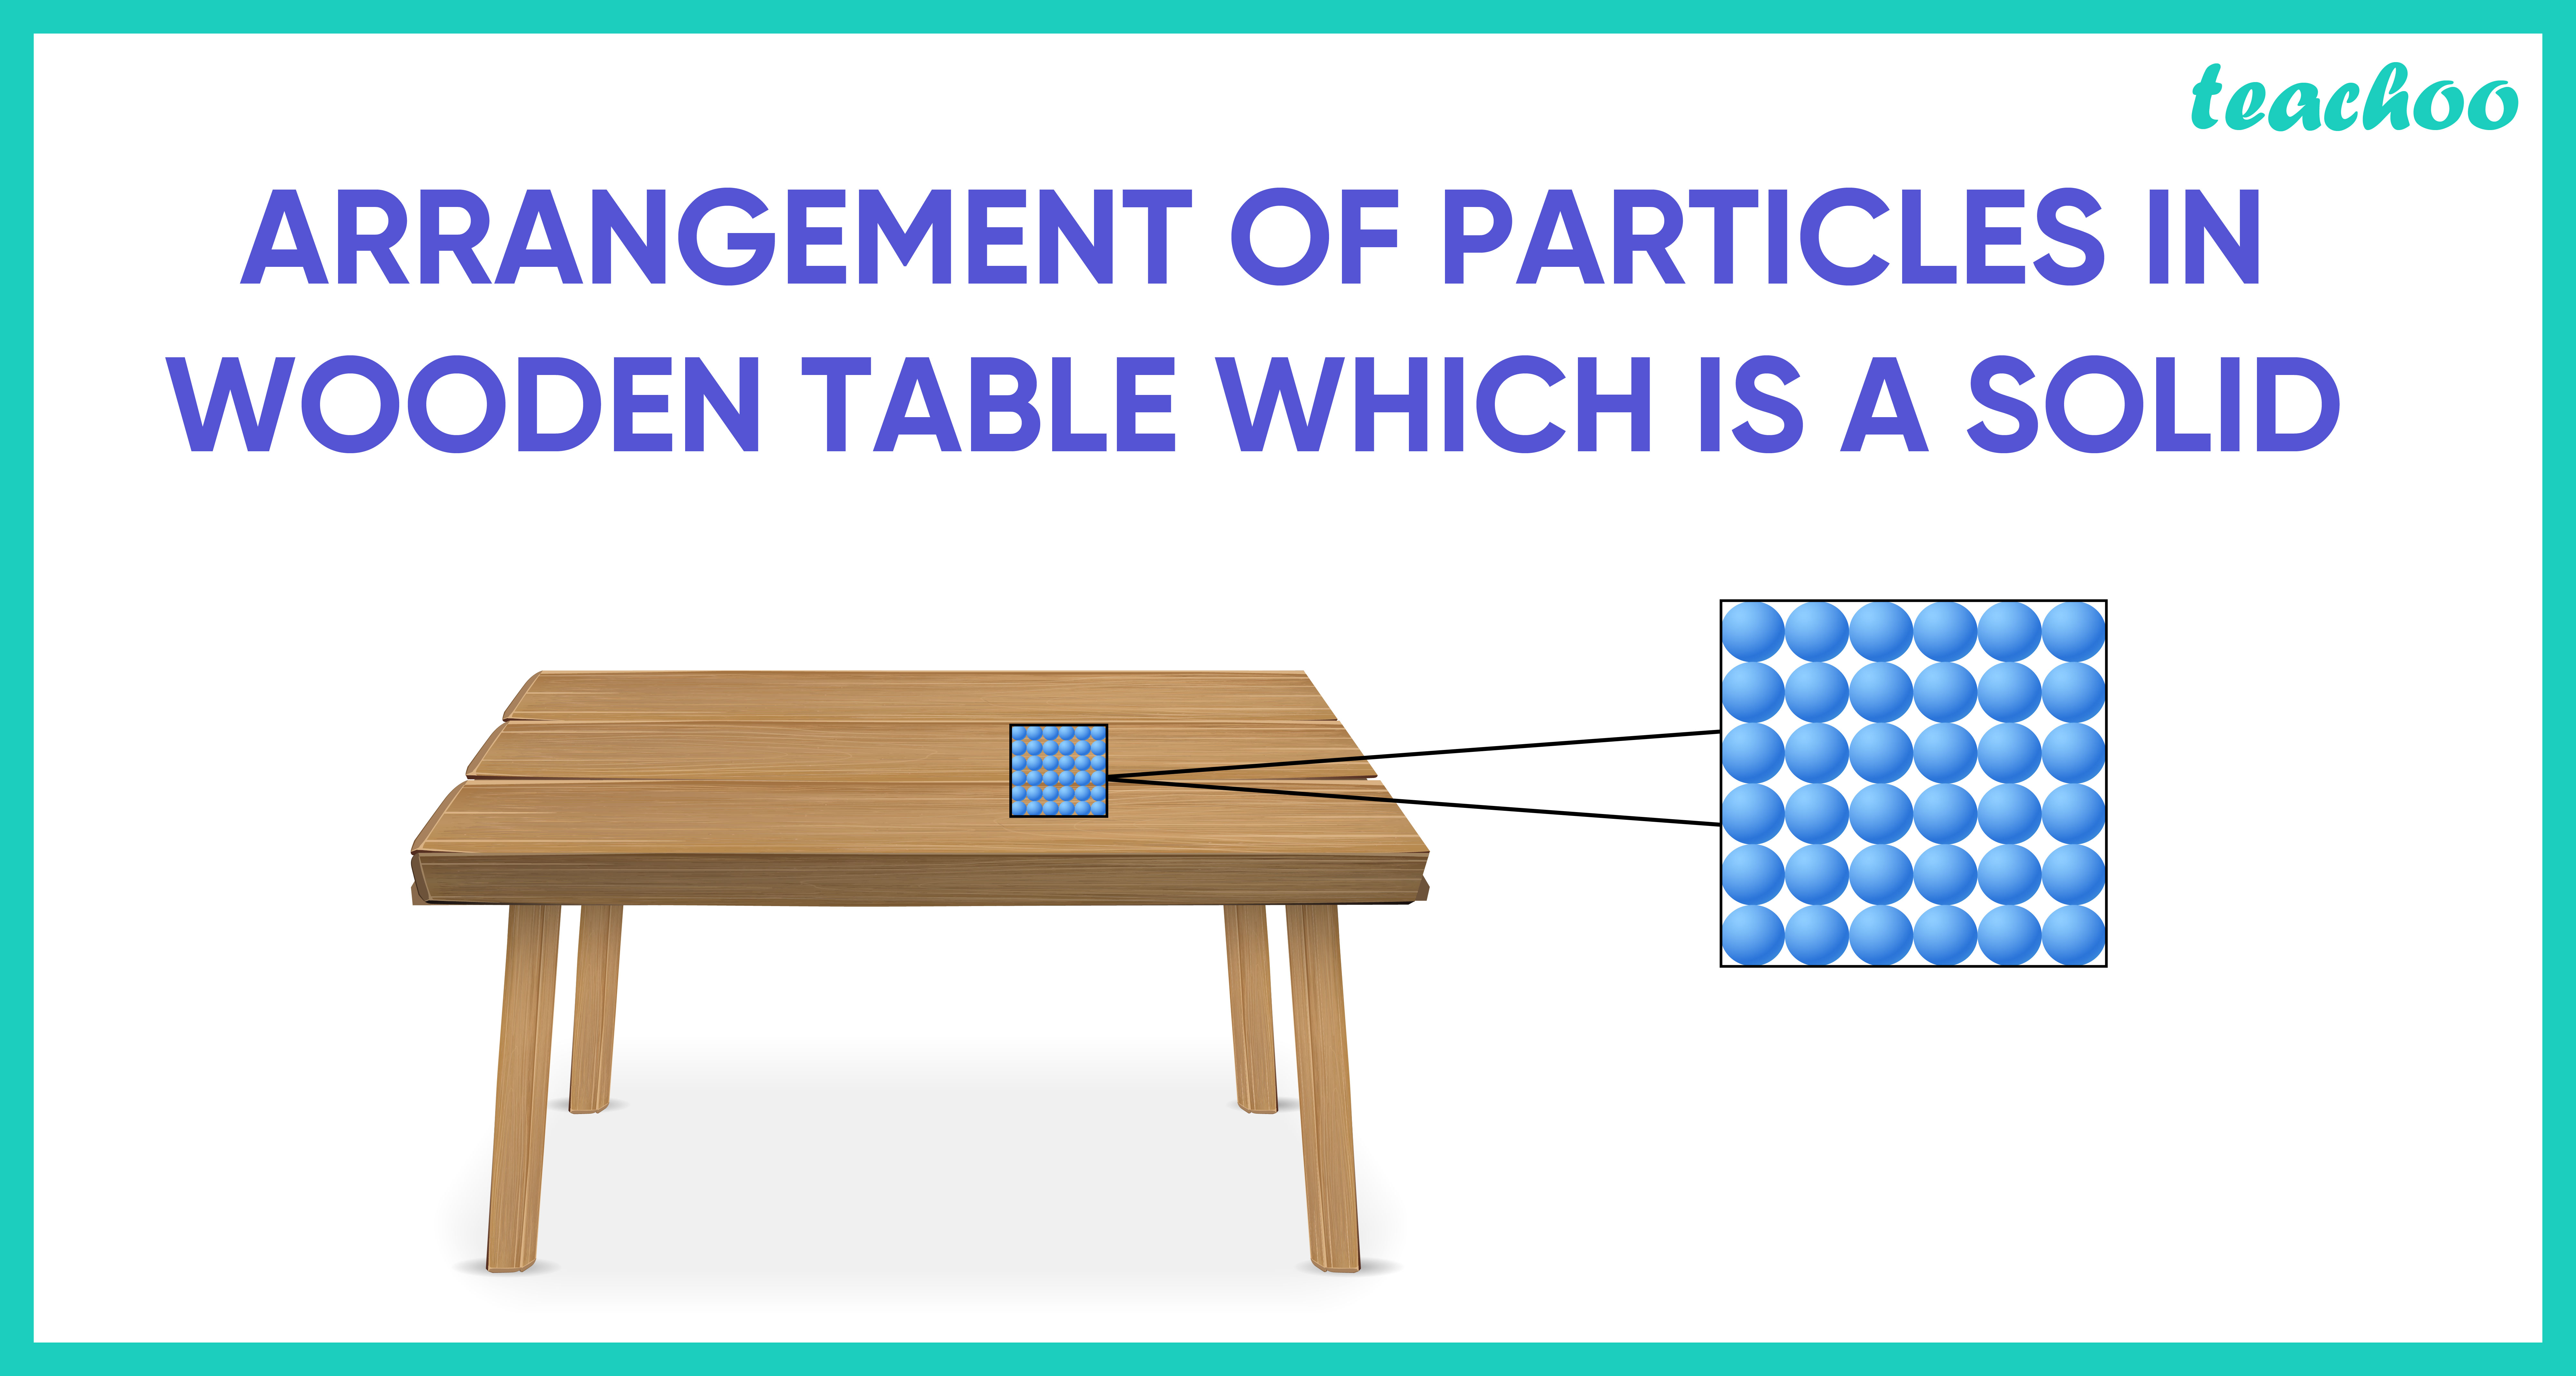 Arrangement of particles in wooden table which is a solid-Teachoo-01.jpg